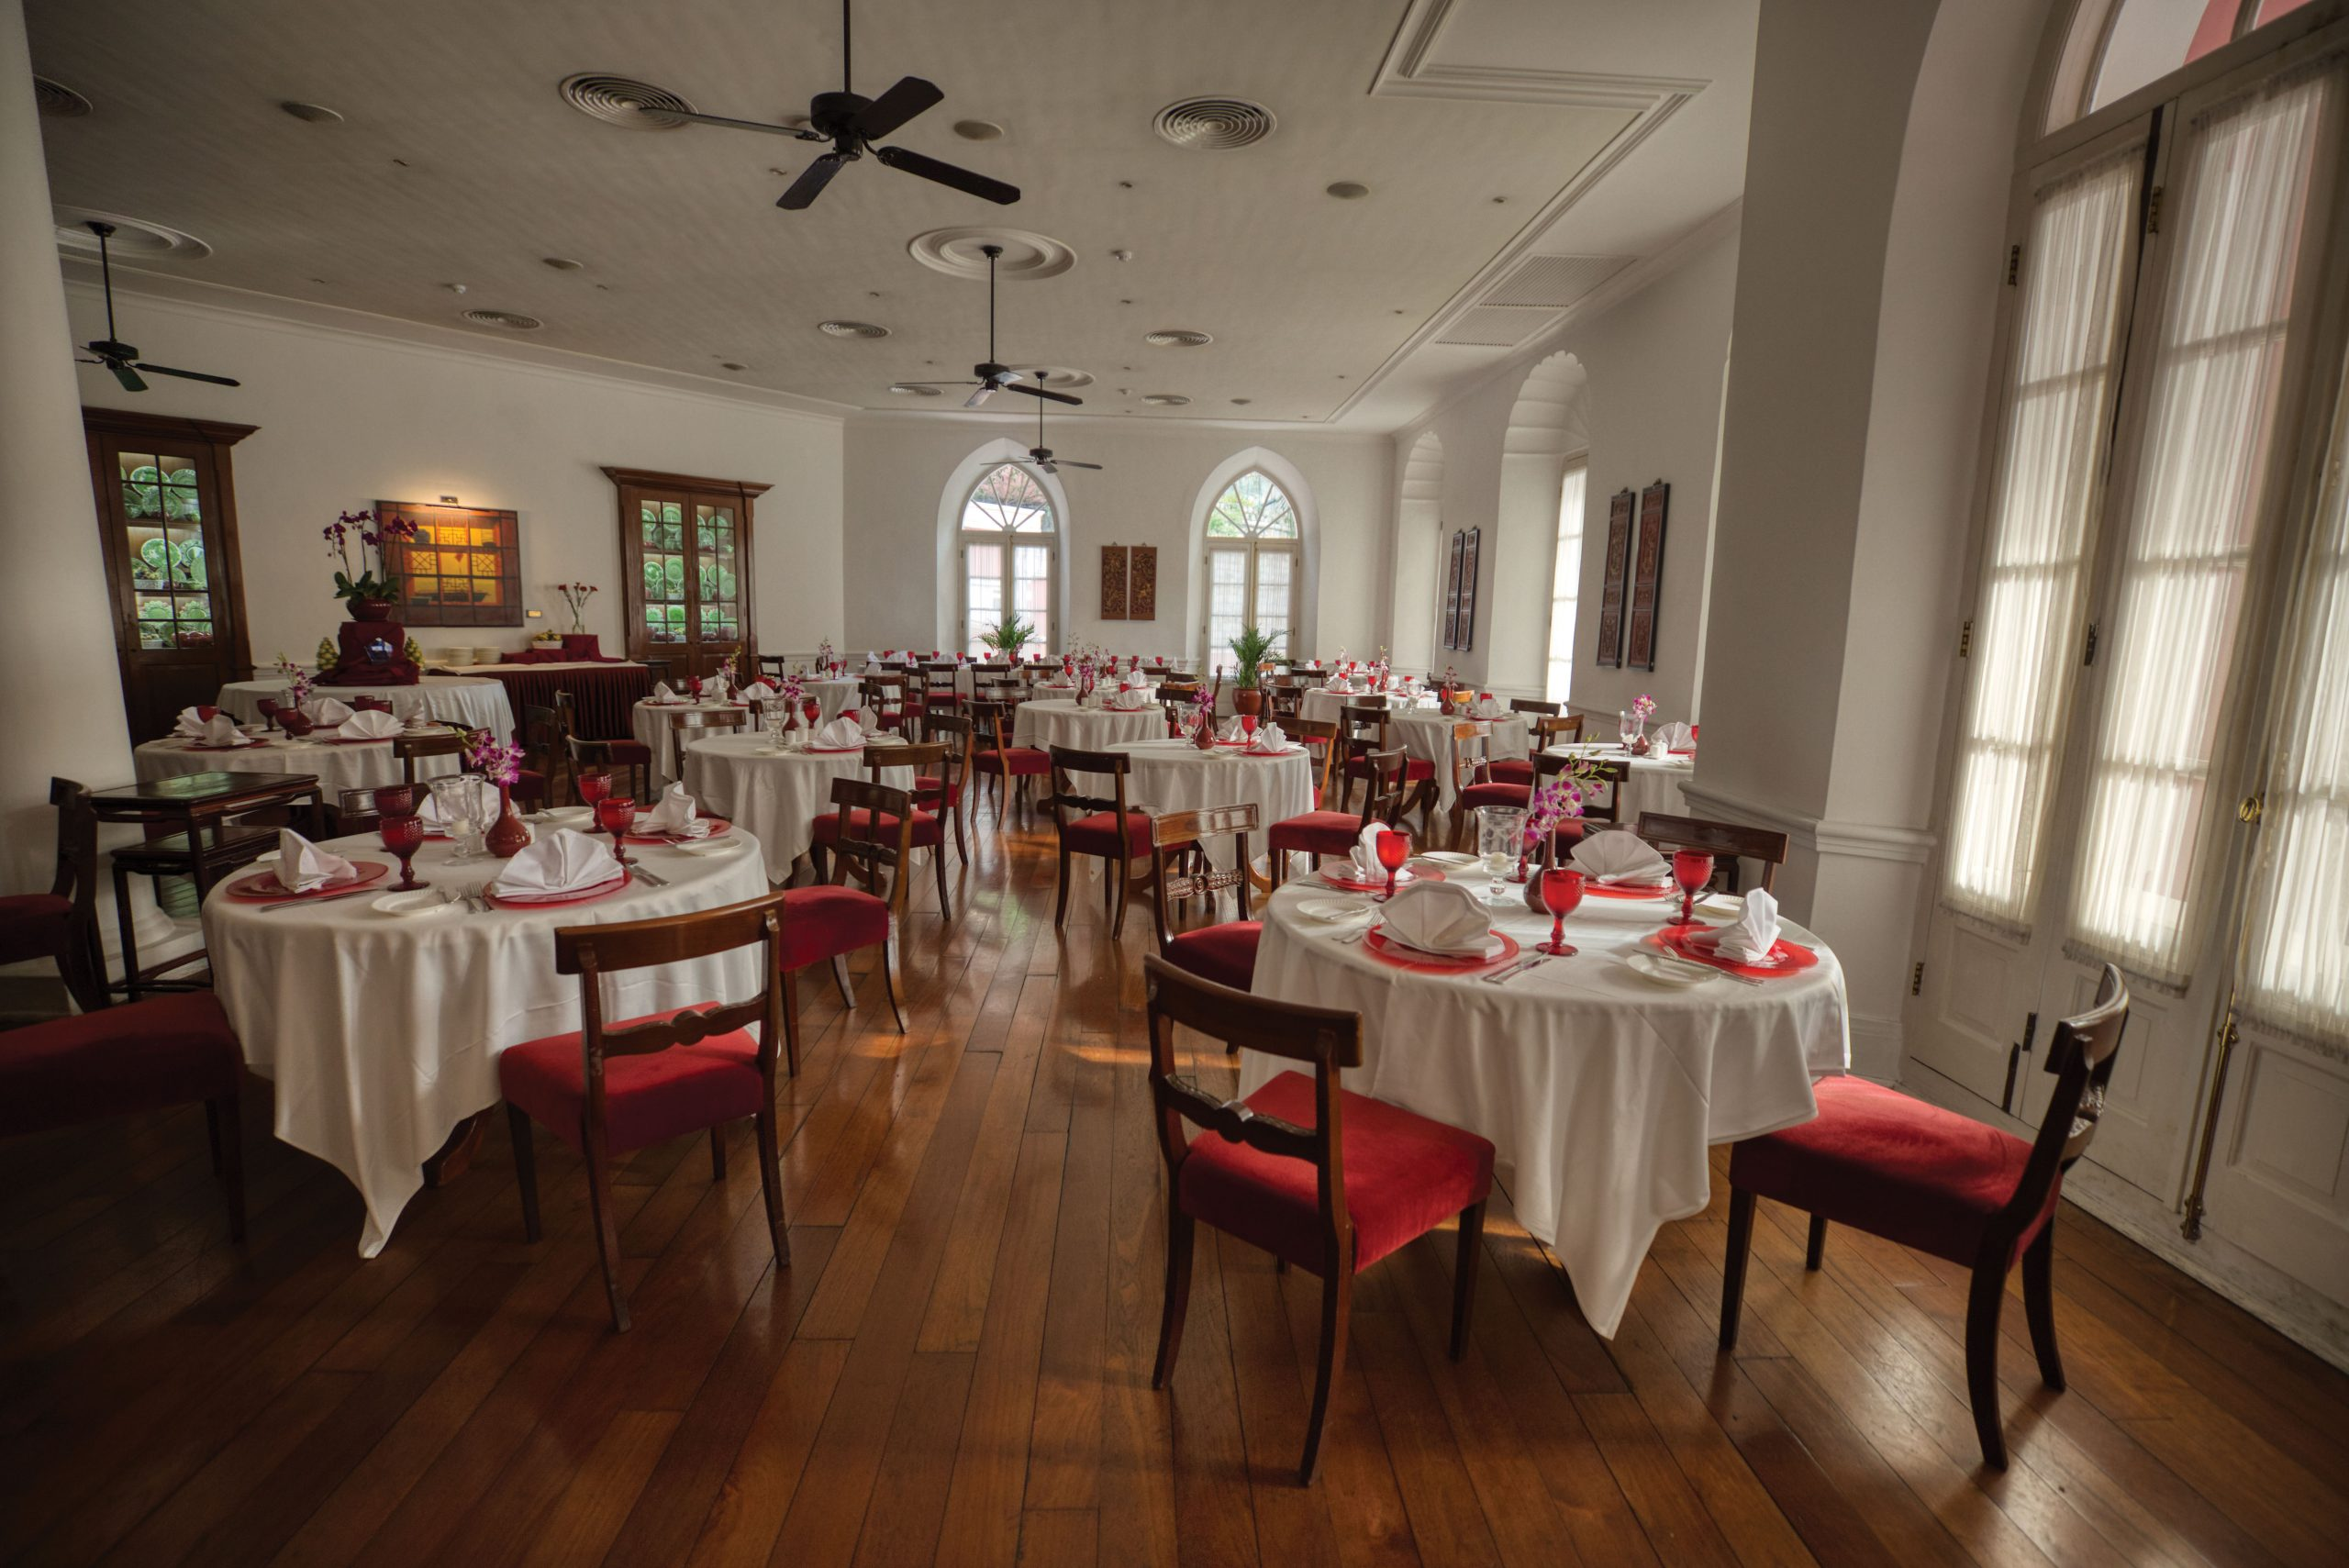 The club's ornate, spacious and relaxed dining area - Photo by António Sanmarful